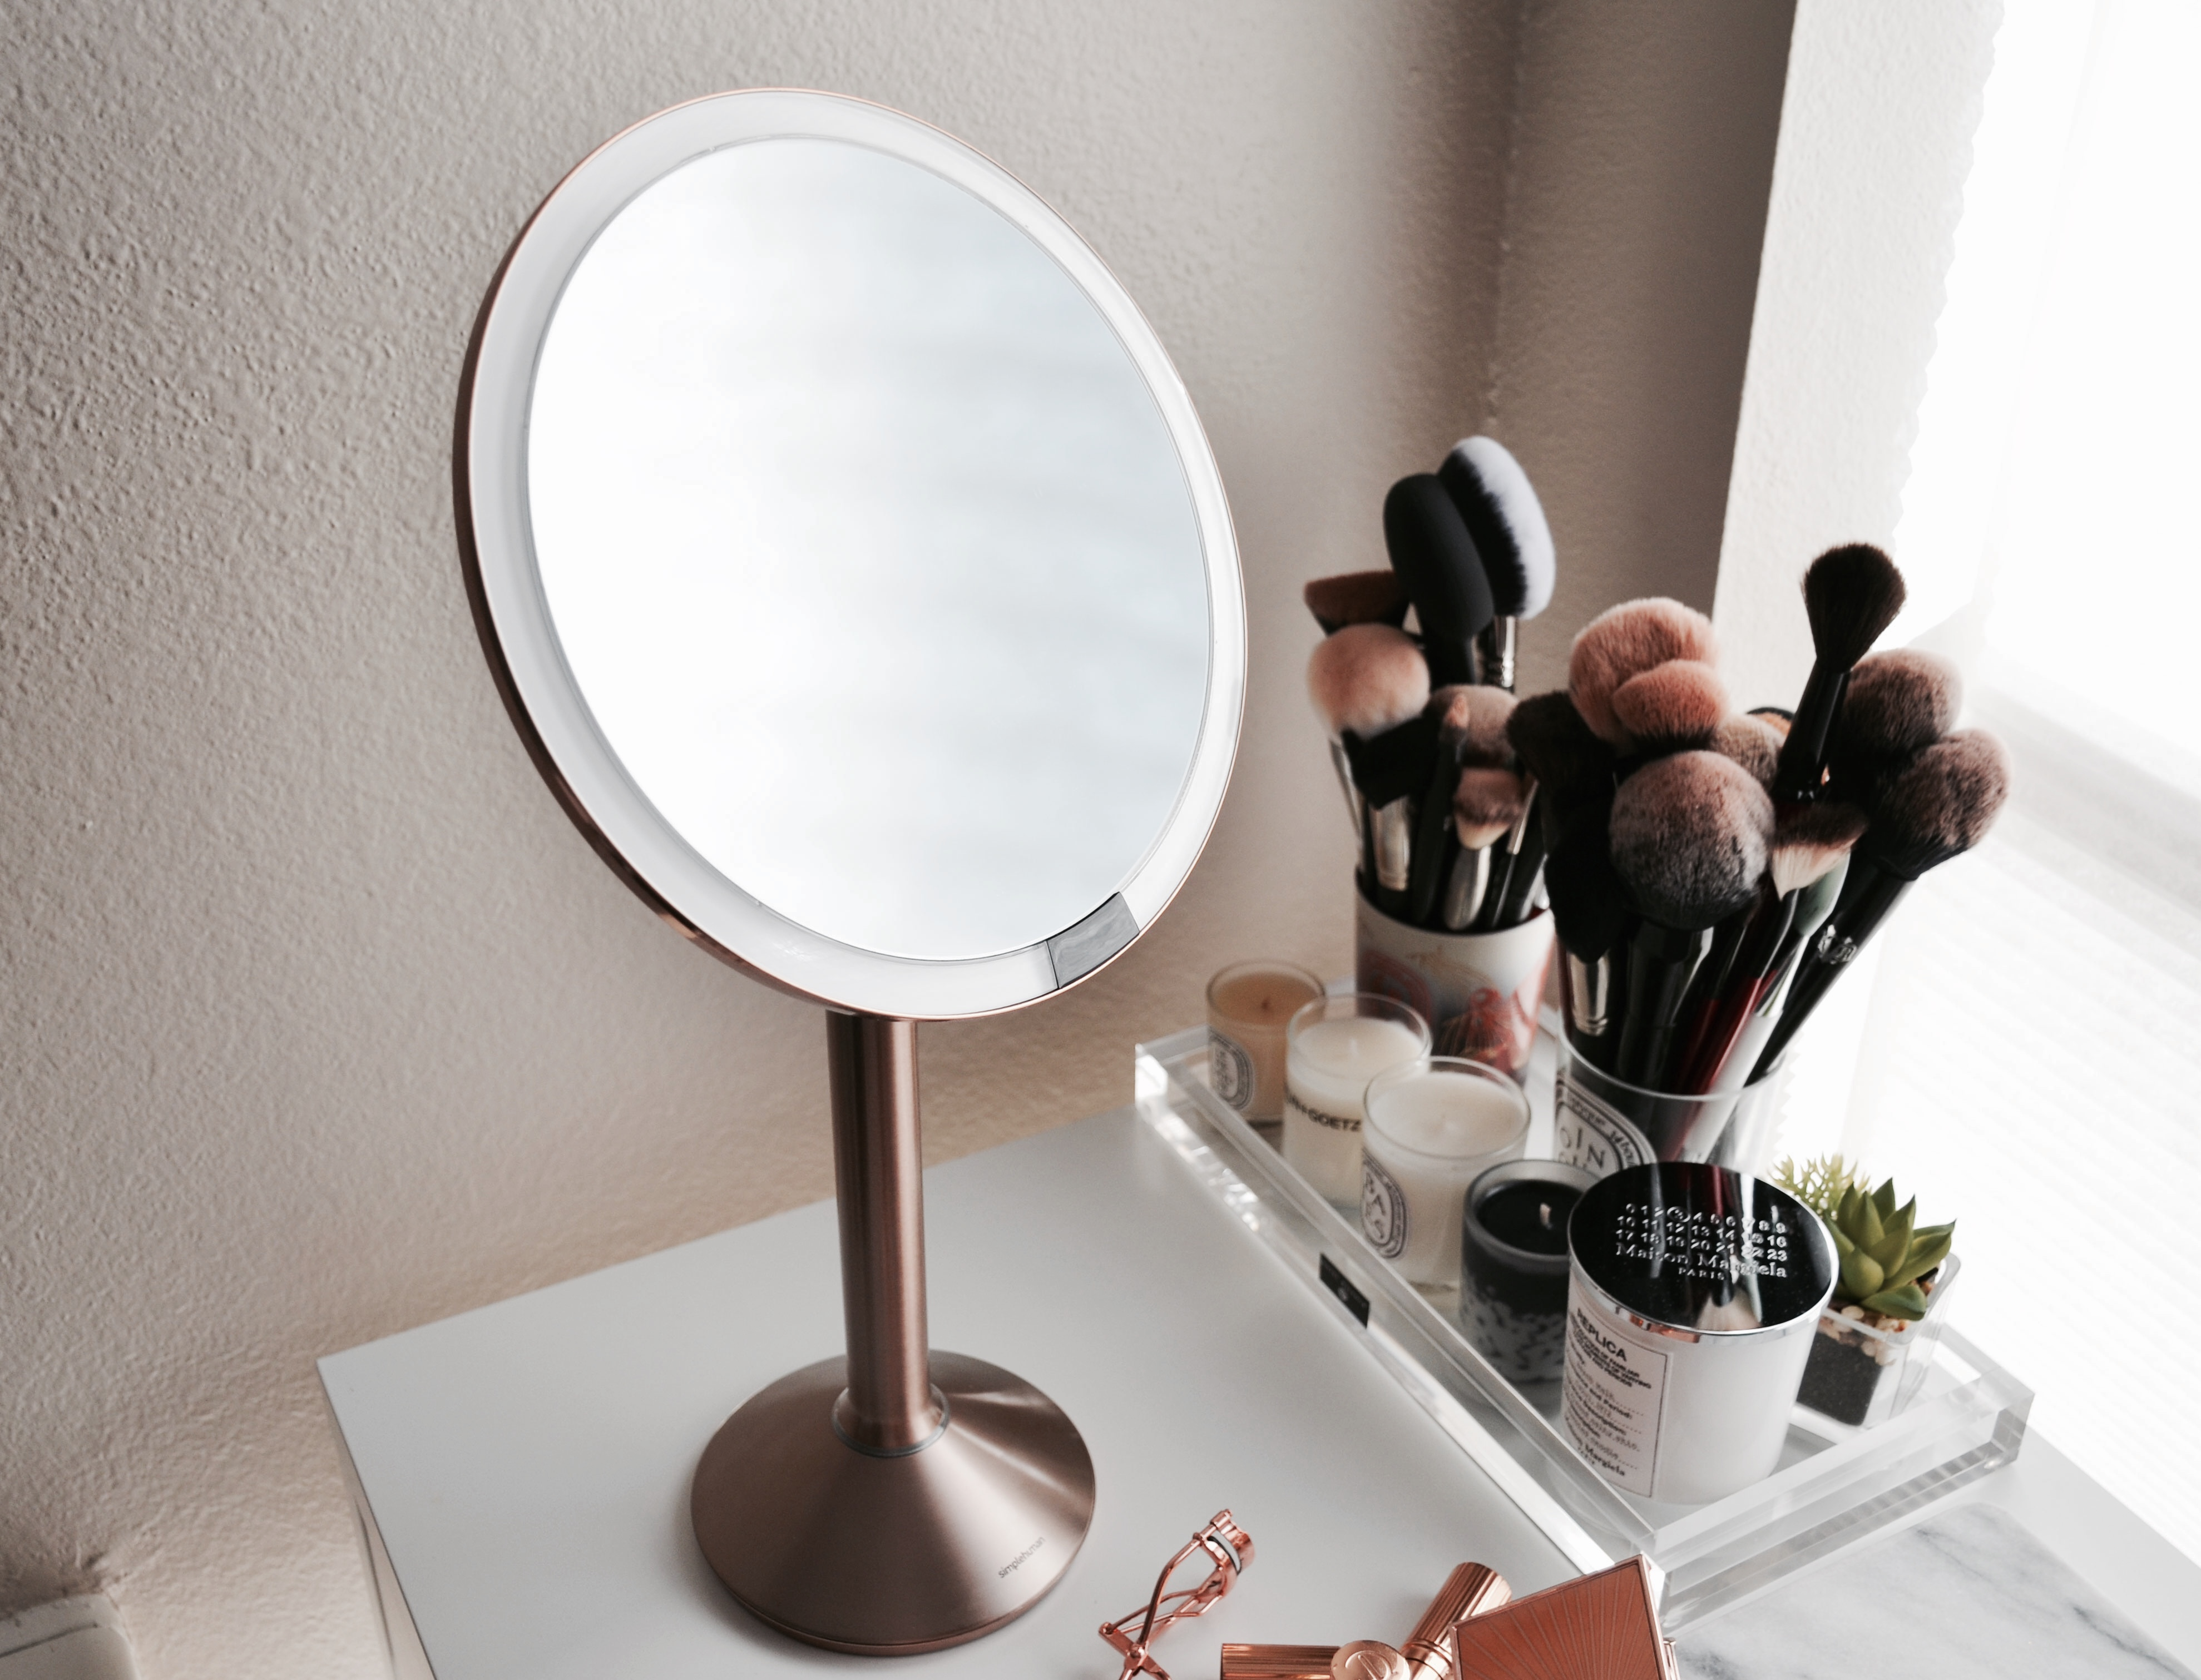 Bottom Line If You Are Someone Who Does Their Makeup On Regular Basis I Highly Recommend Investing In One Of These Mirrors It Makes Your Life Easier And